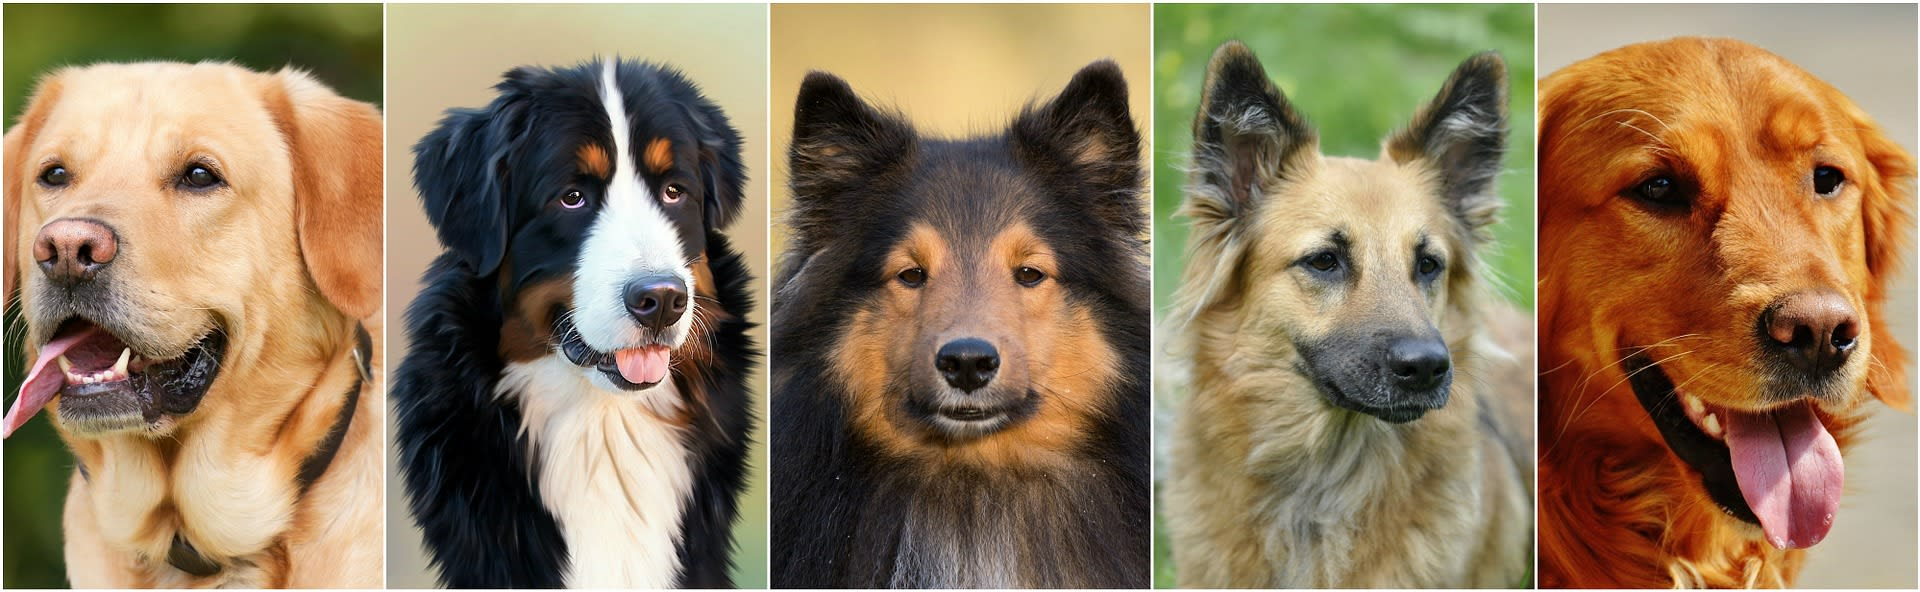 related dogs